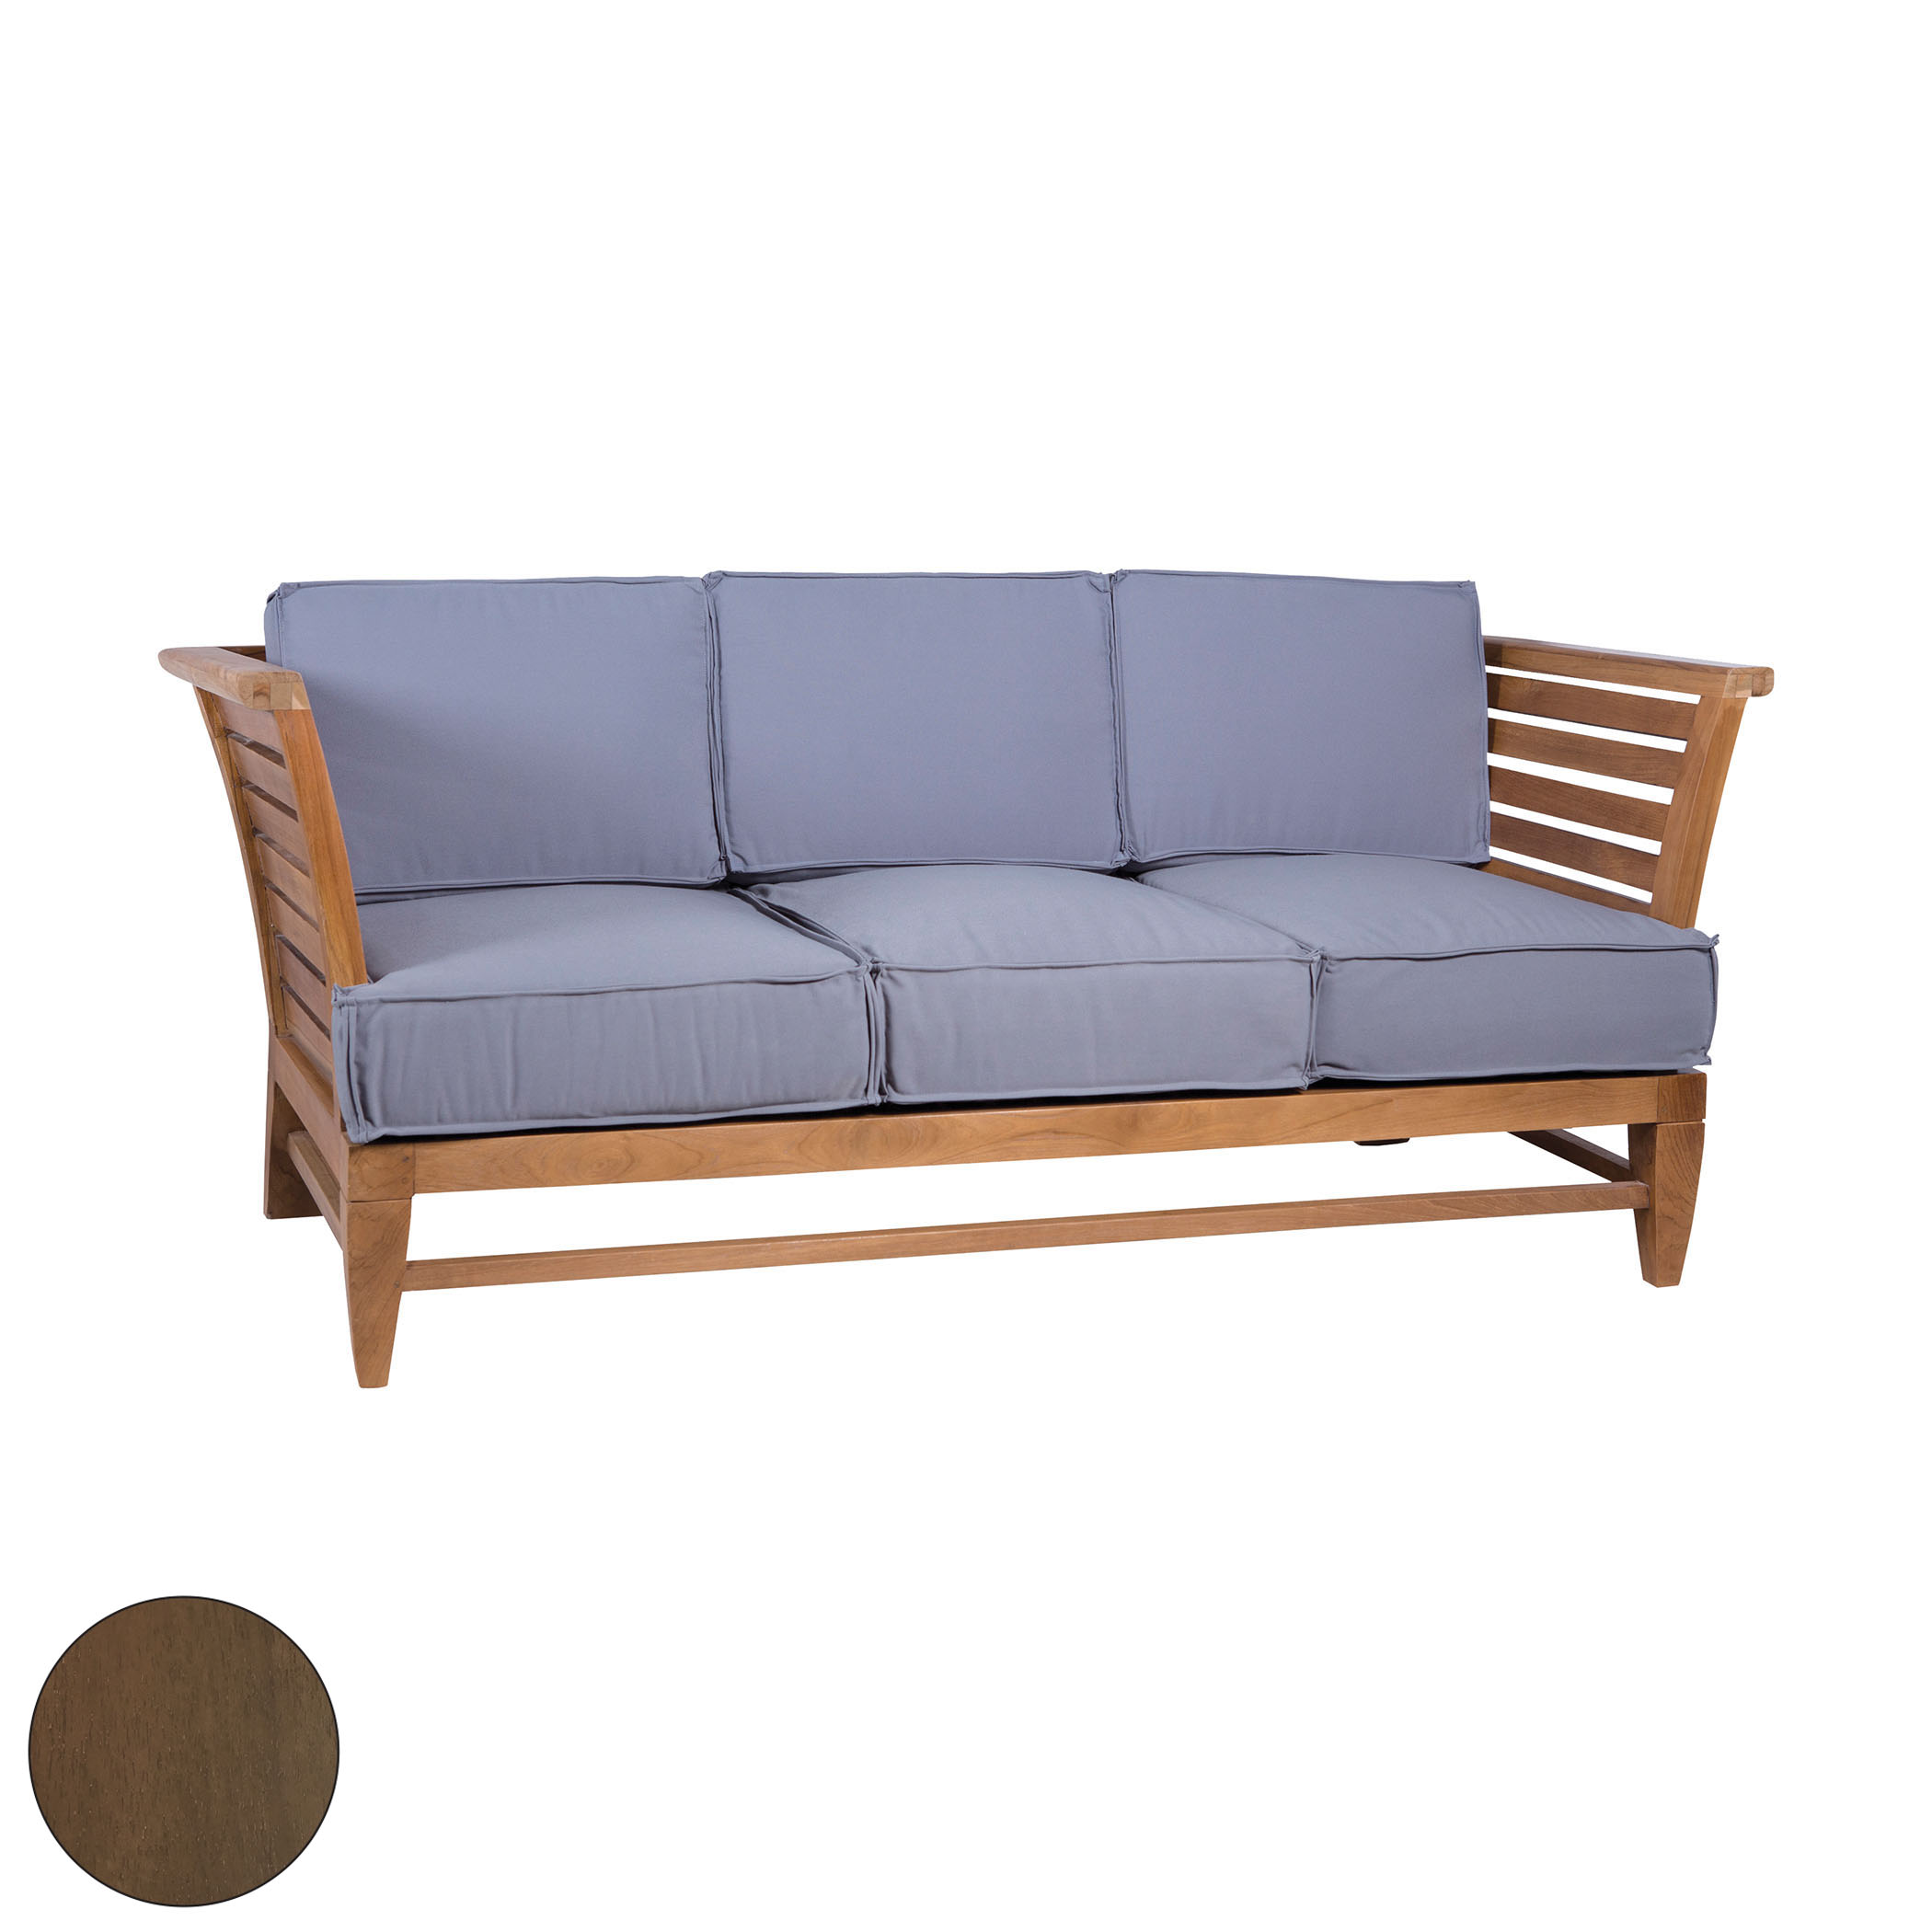 Galveston Pier Sofa 6517503BU | ELK Home